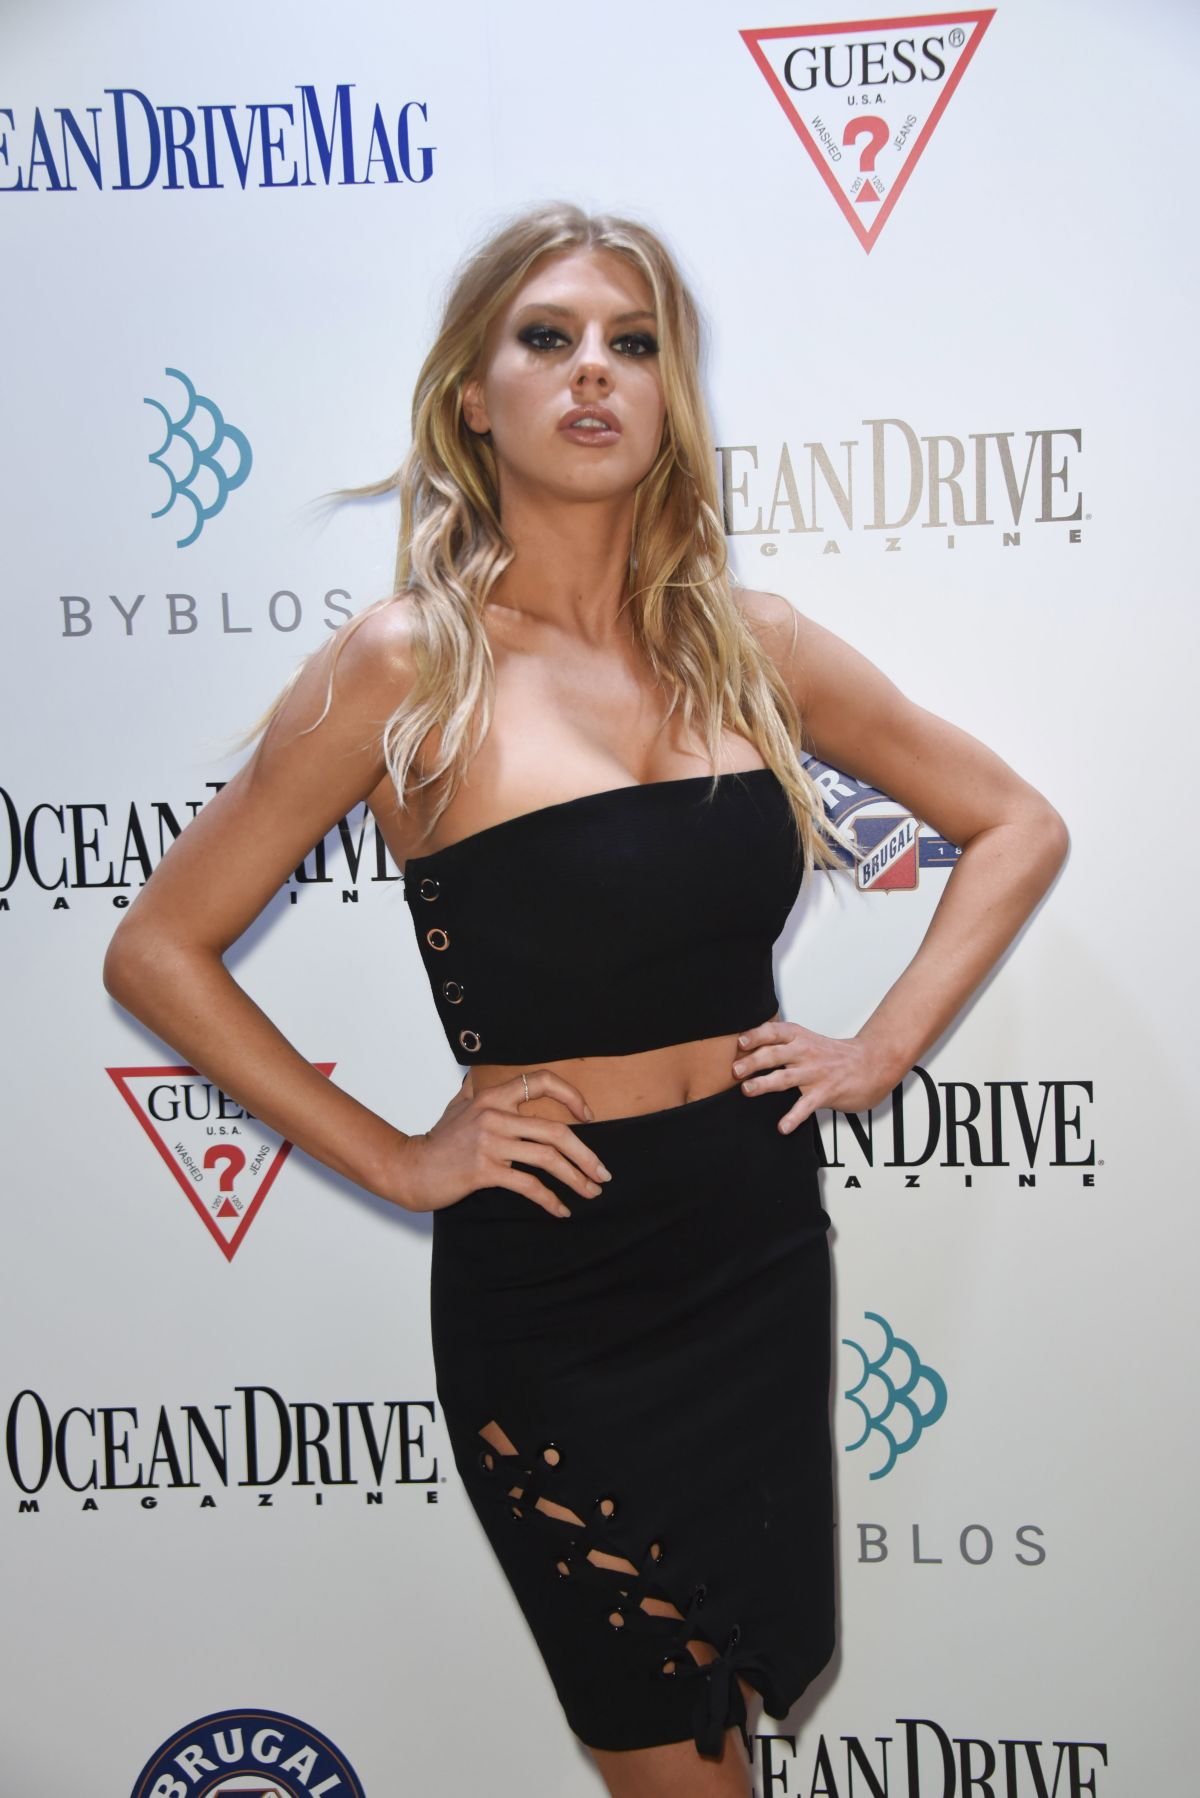 charlotte-mckinney-at-ocean-drive-magazine-celebration-party-in-miami-02-15-2017_4.jpg